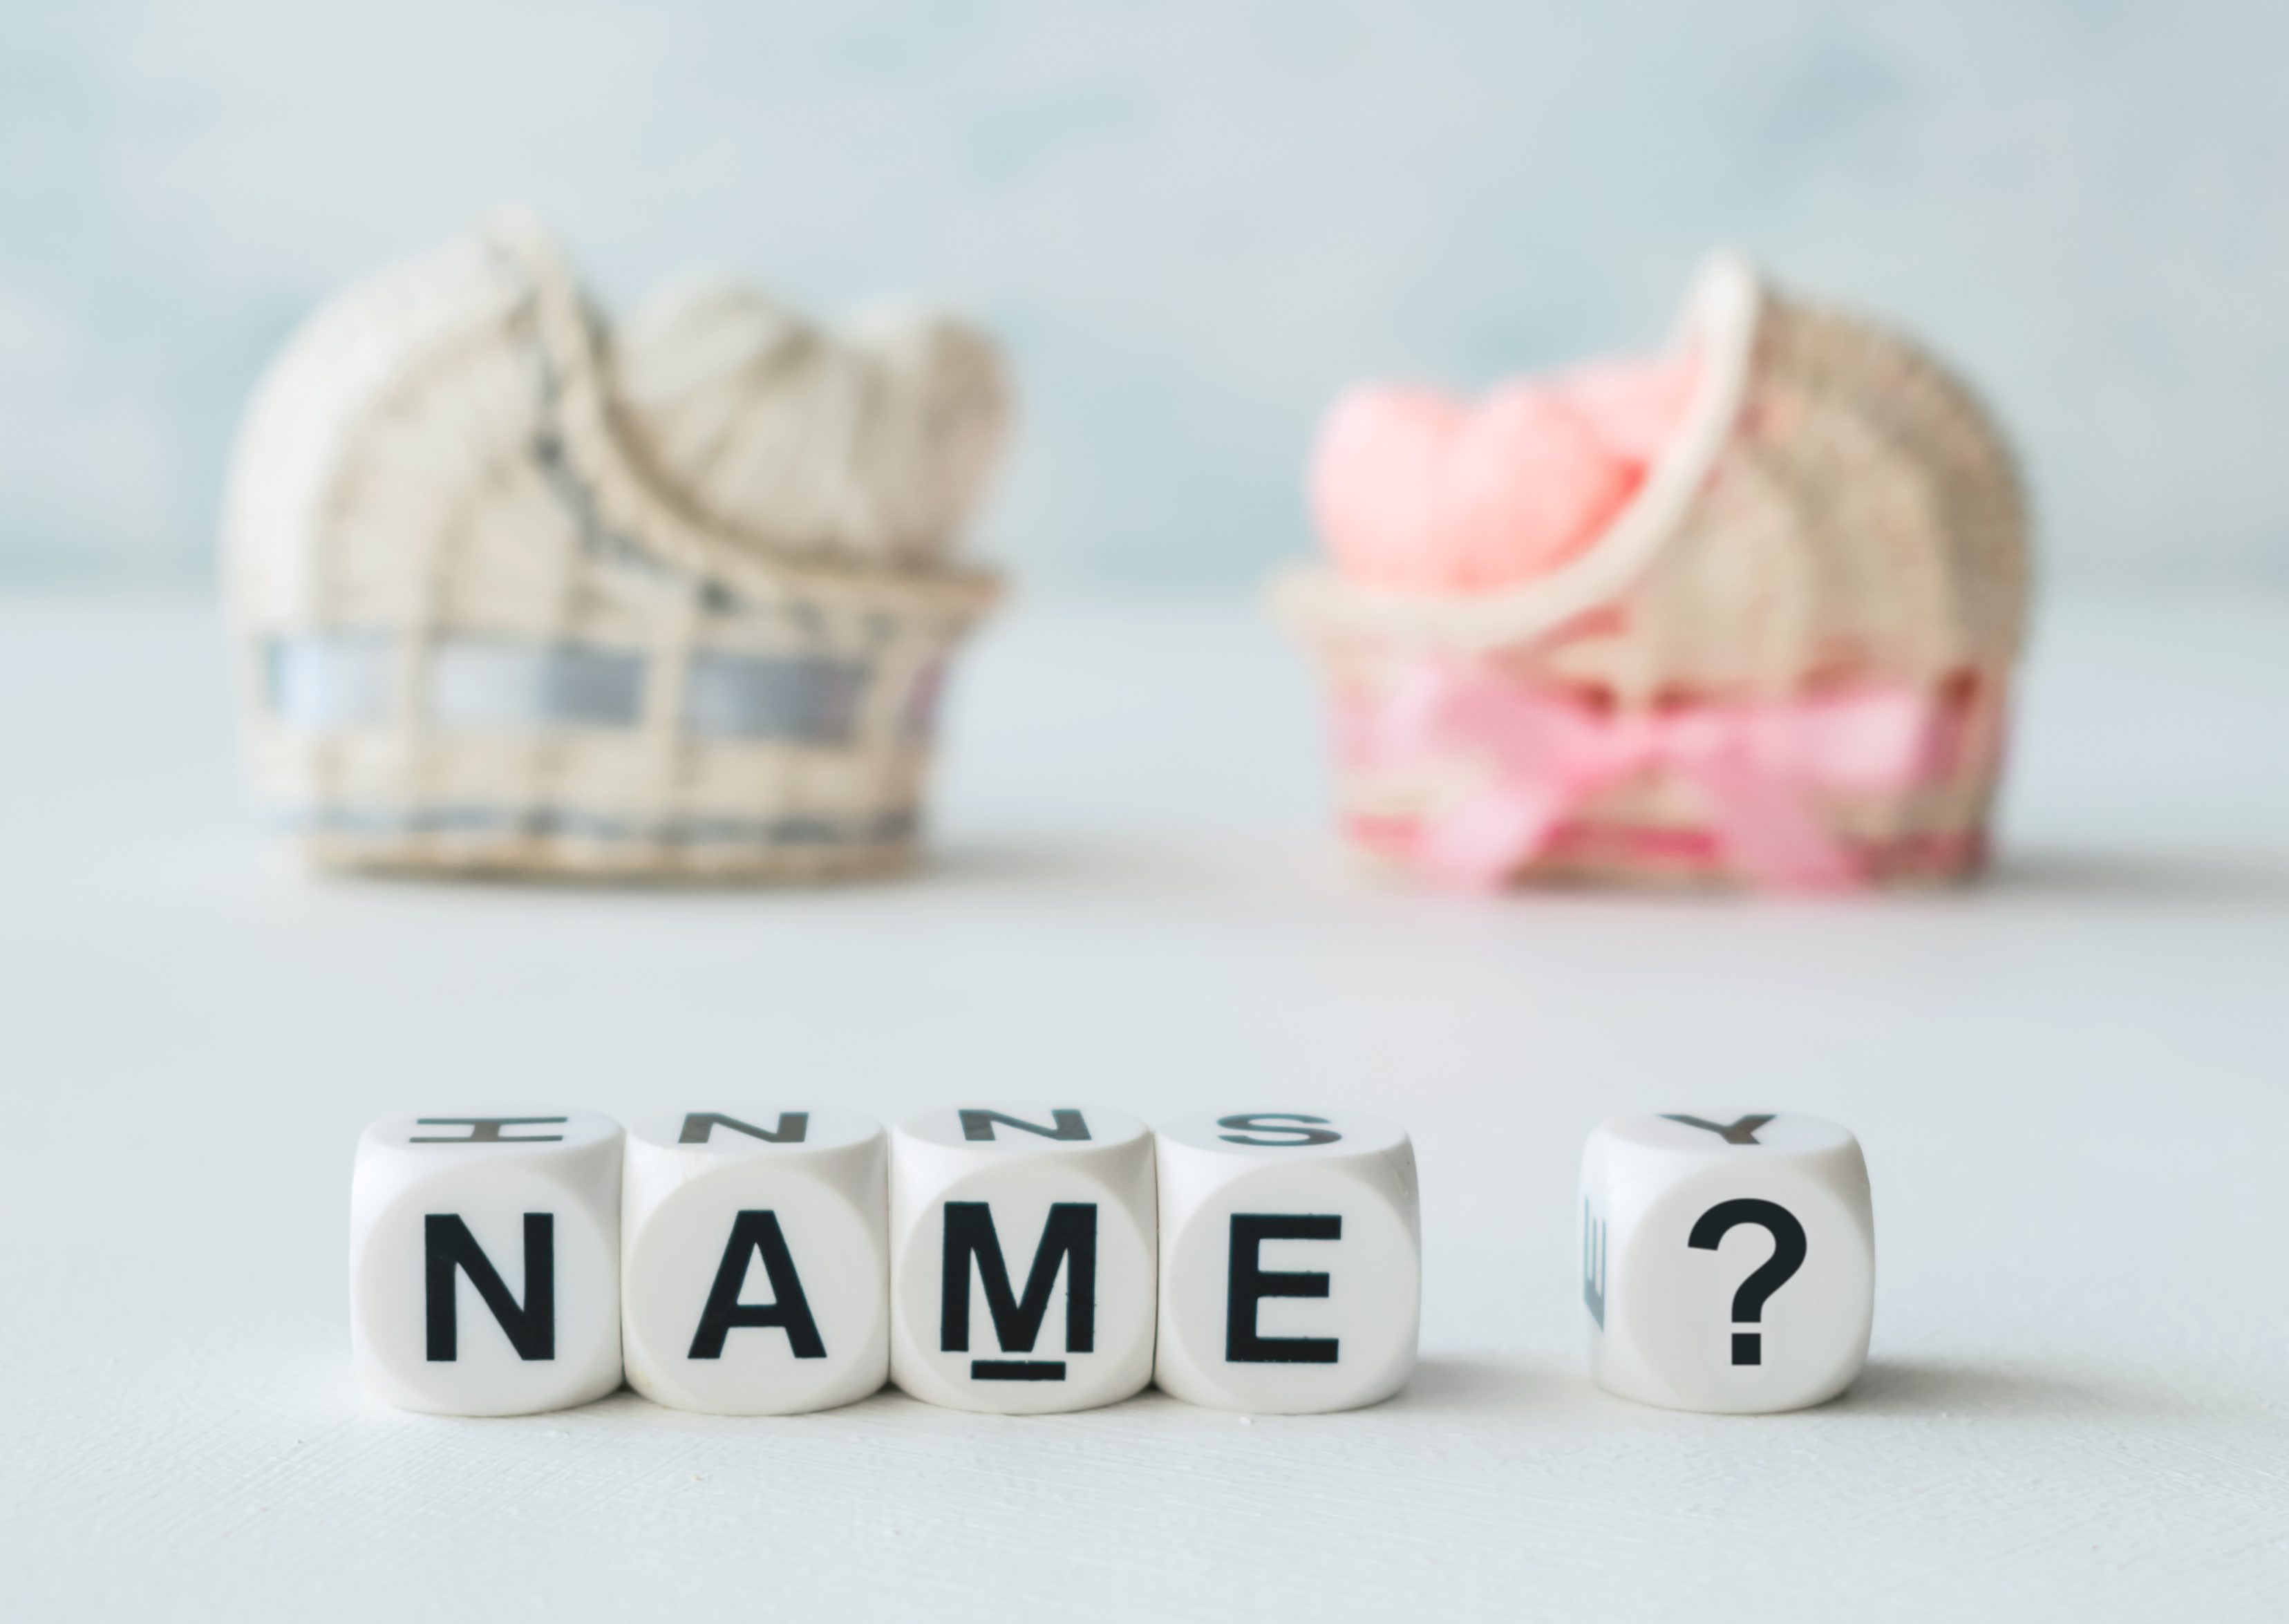 / Name Nutella And Cyanide Are Among The Most Daft Baby Names Parents Have